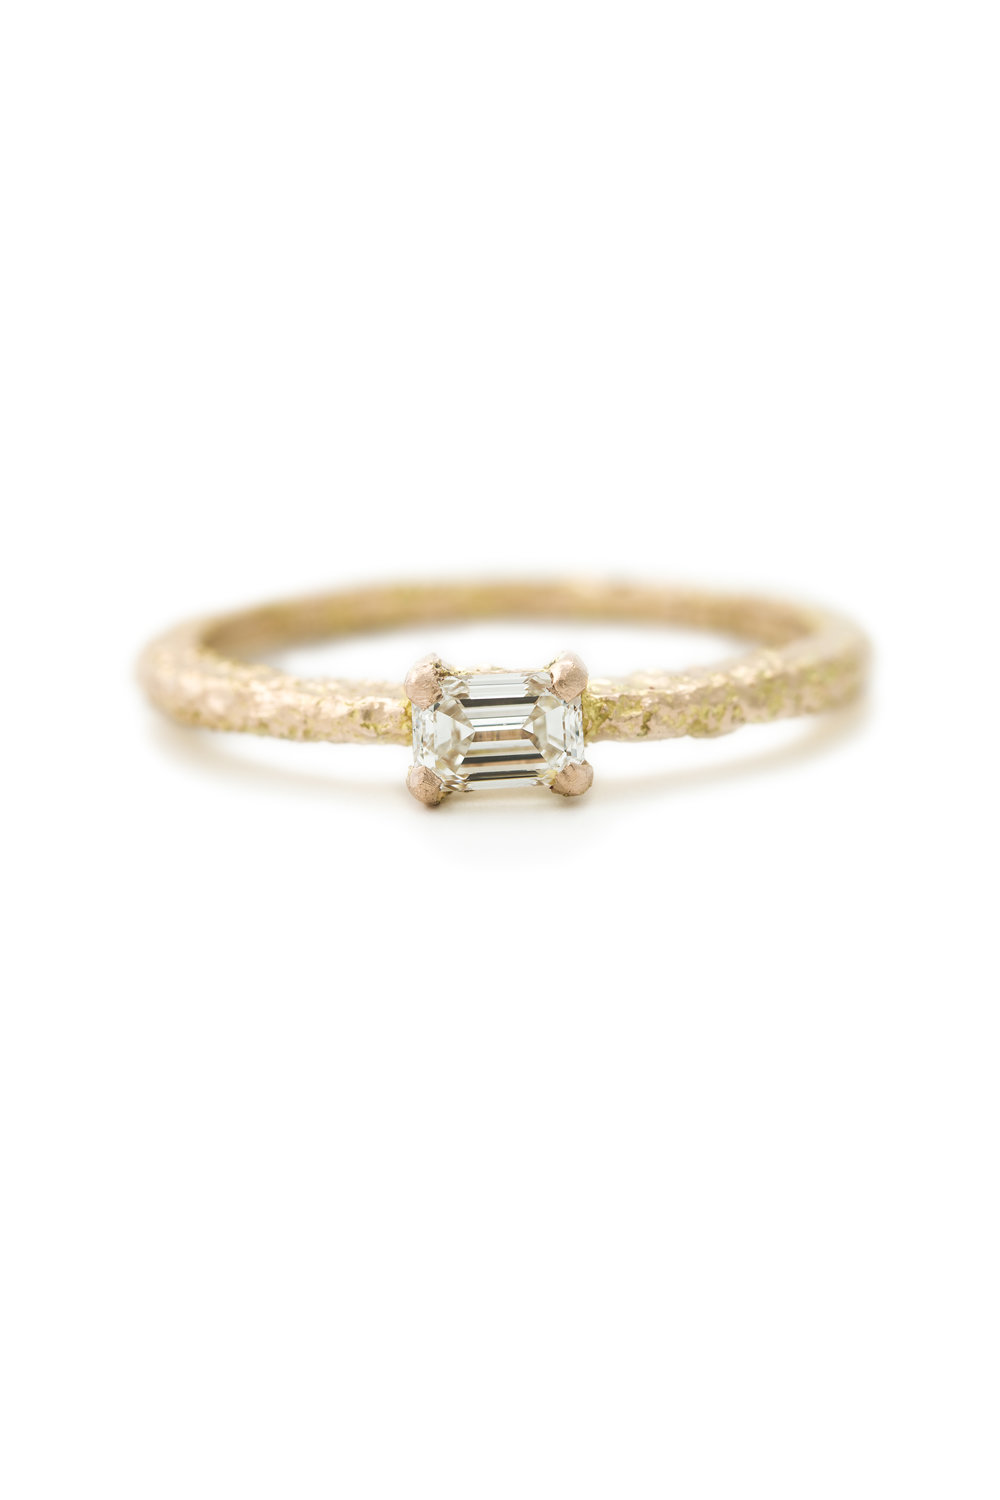 White emerald cut diamond ring in rose gold, £2820